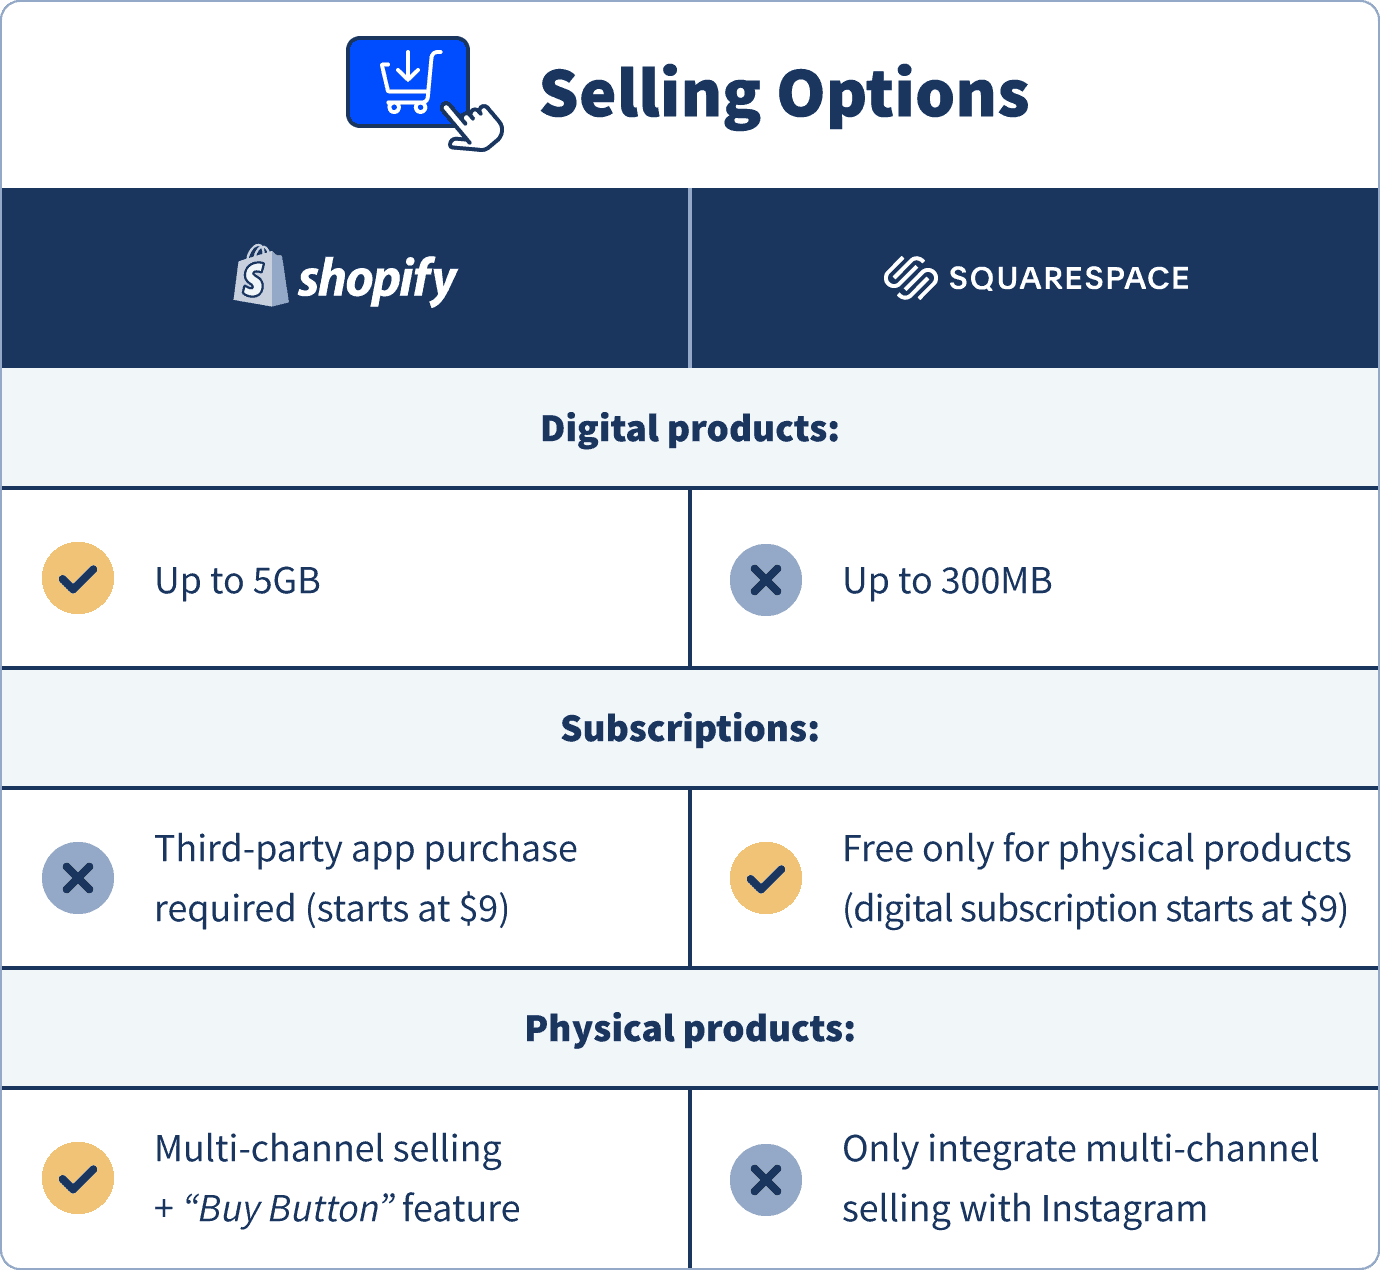 Shopify's vs. Squarespace's selling options